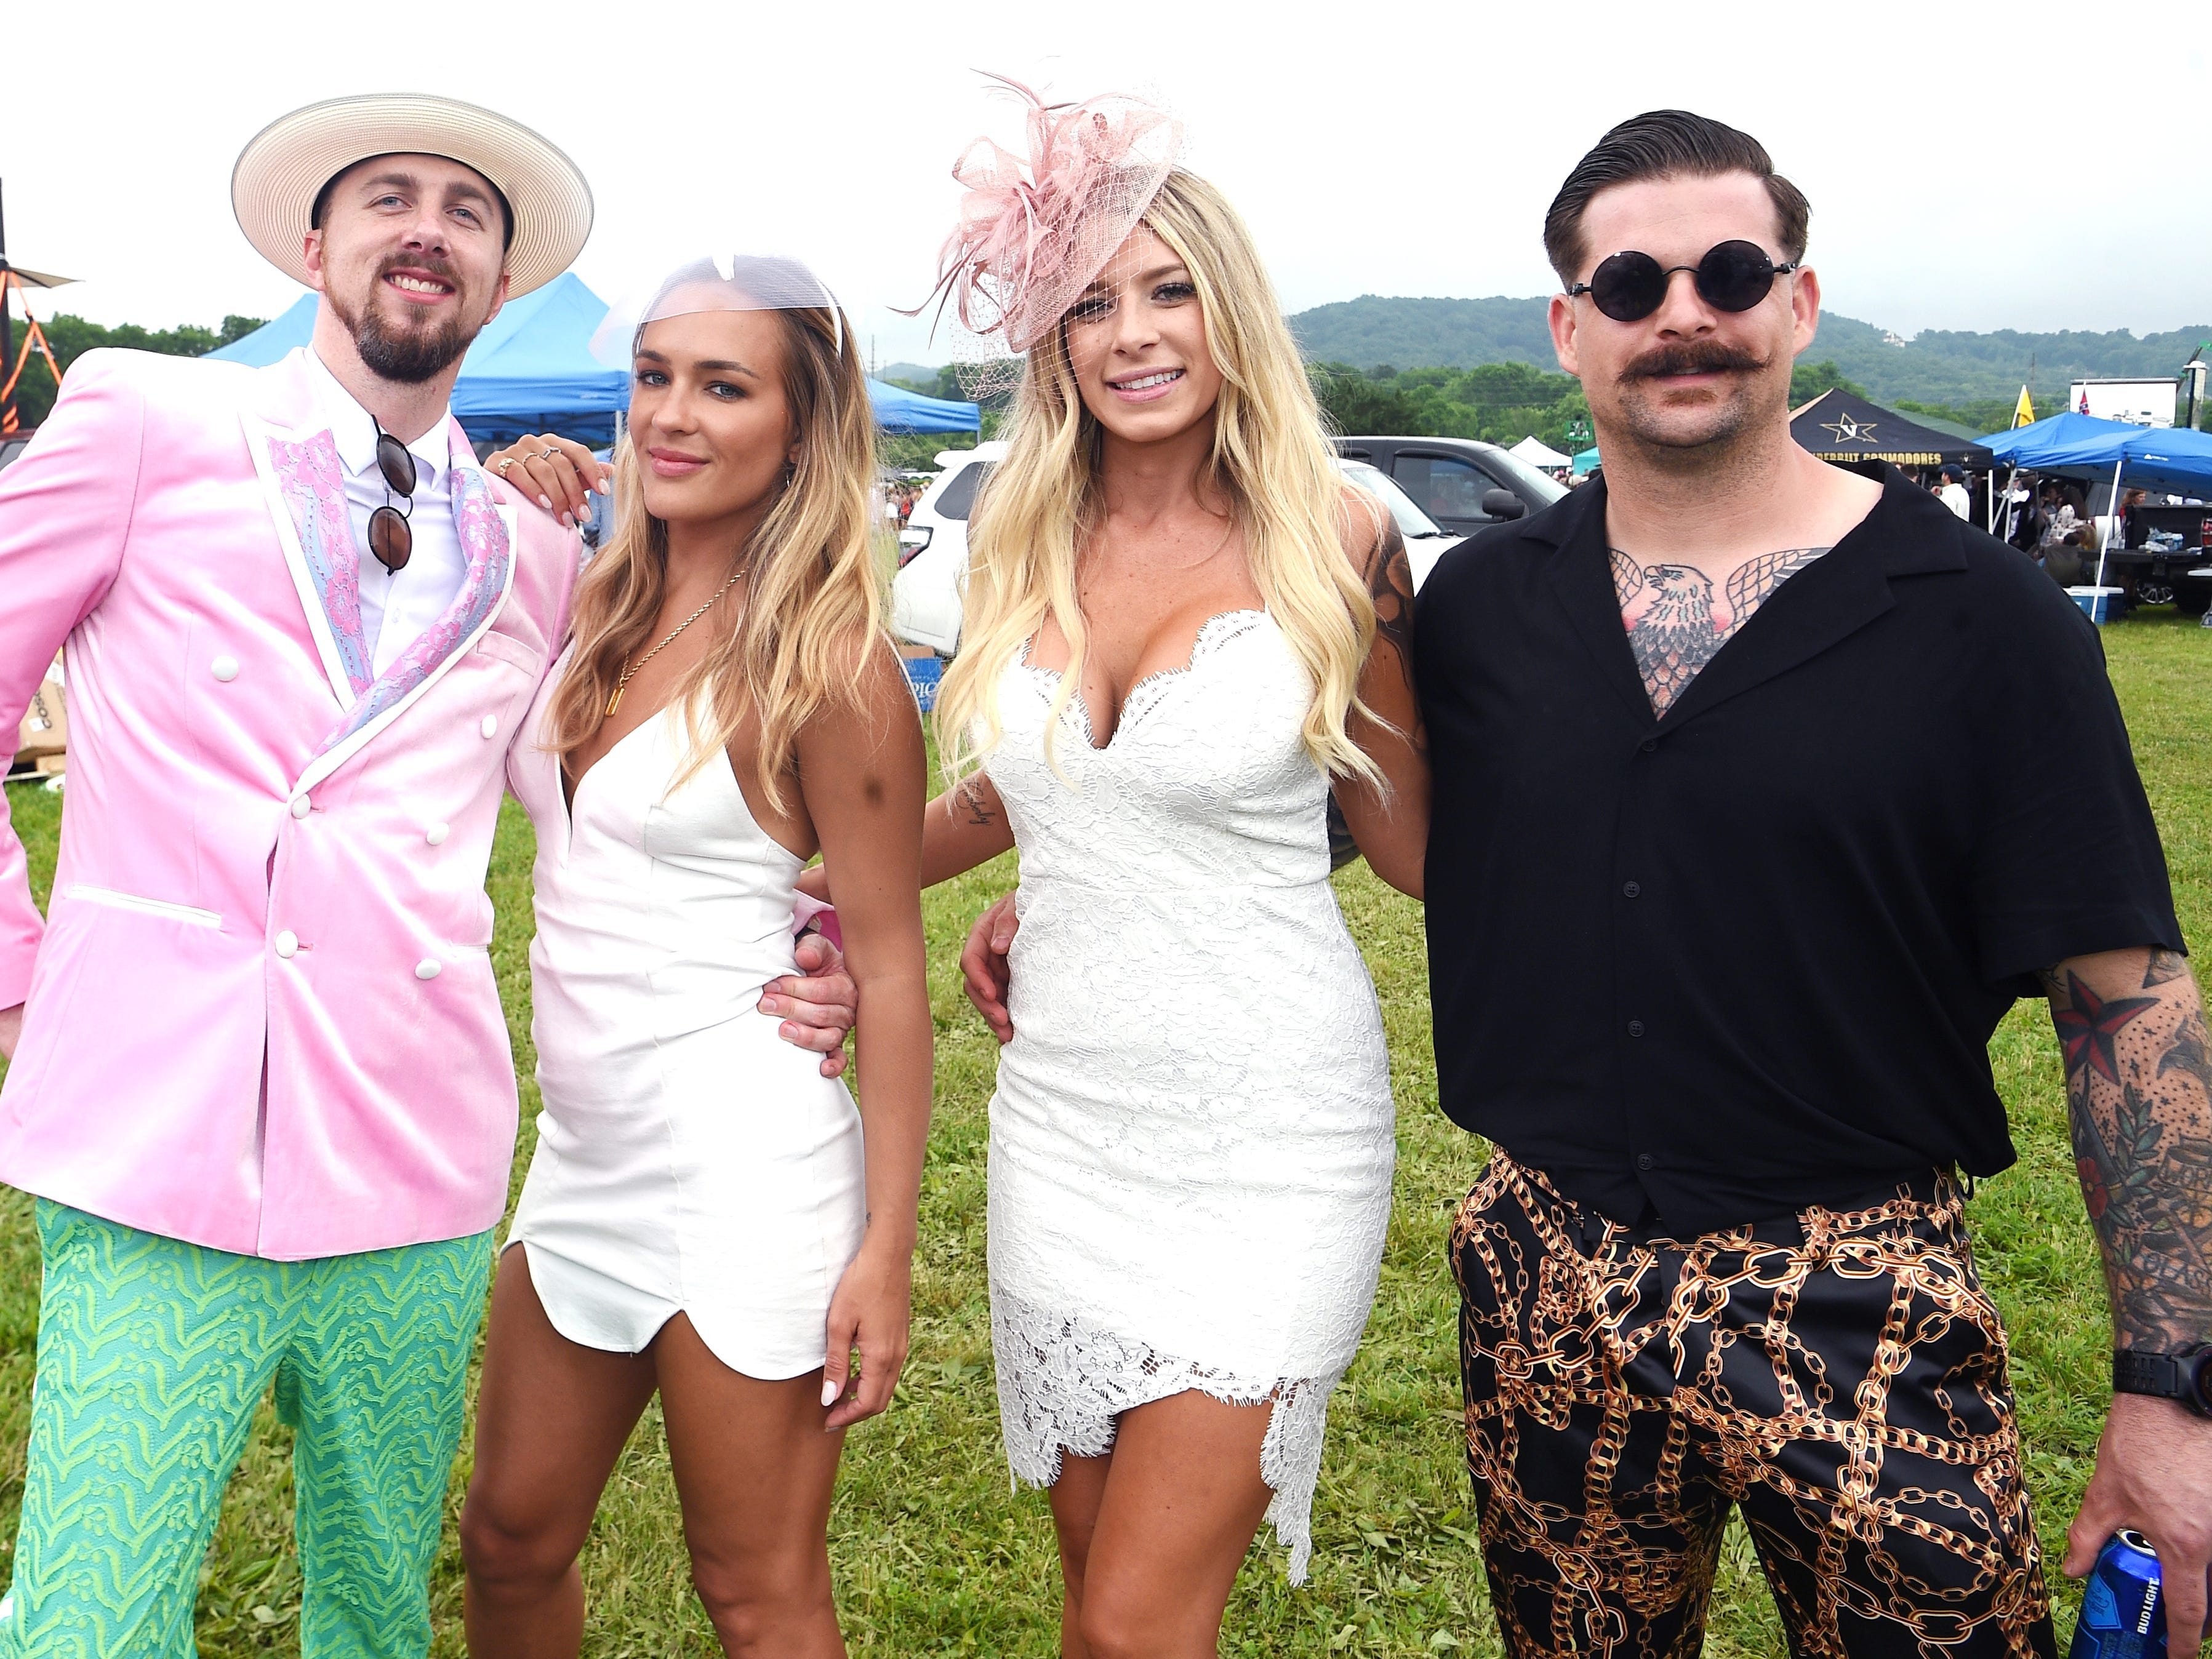 Darren Flanary, Preslie Lebfrom, Kylie Jarriel and Andrew Bowden at the 78th Iroquois Steeplechase at Percy Warner Park in Nashville on Saturday, May 11, 2019.